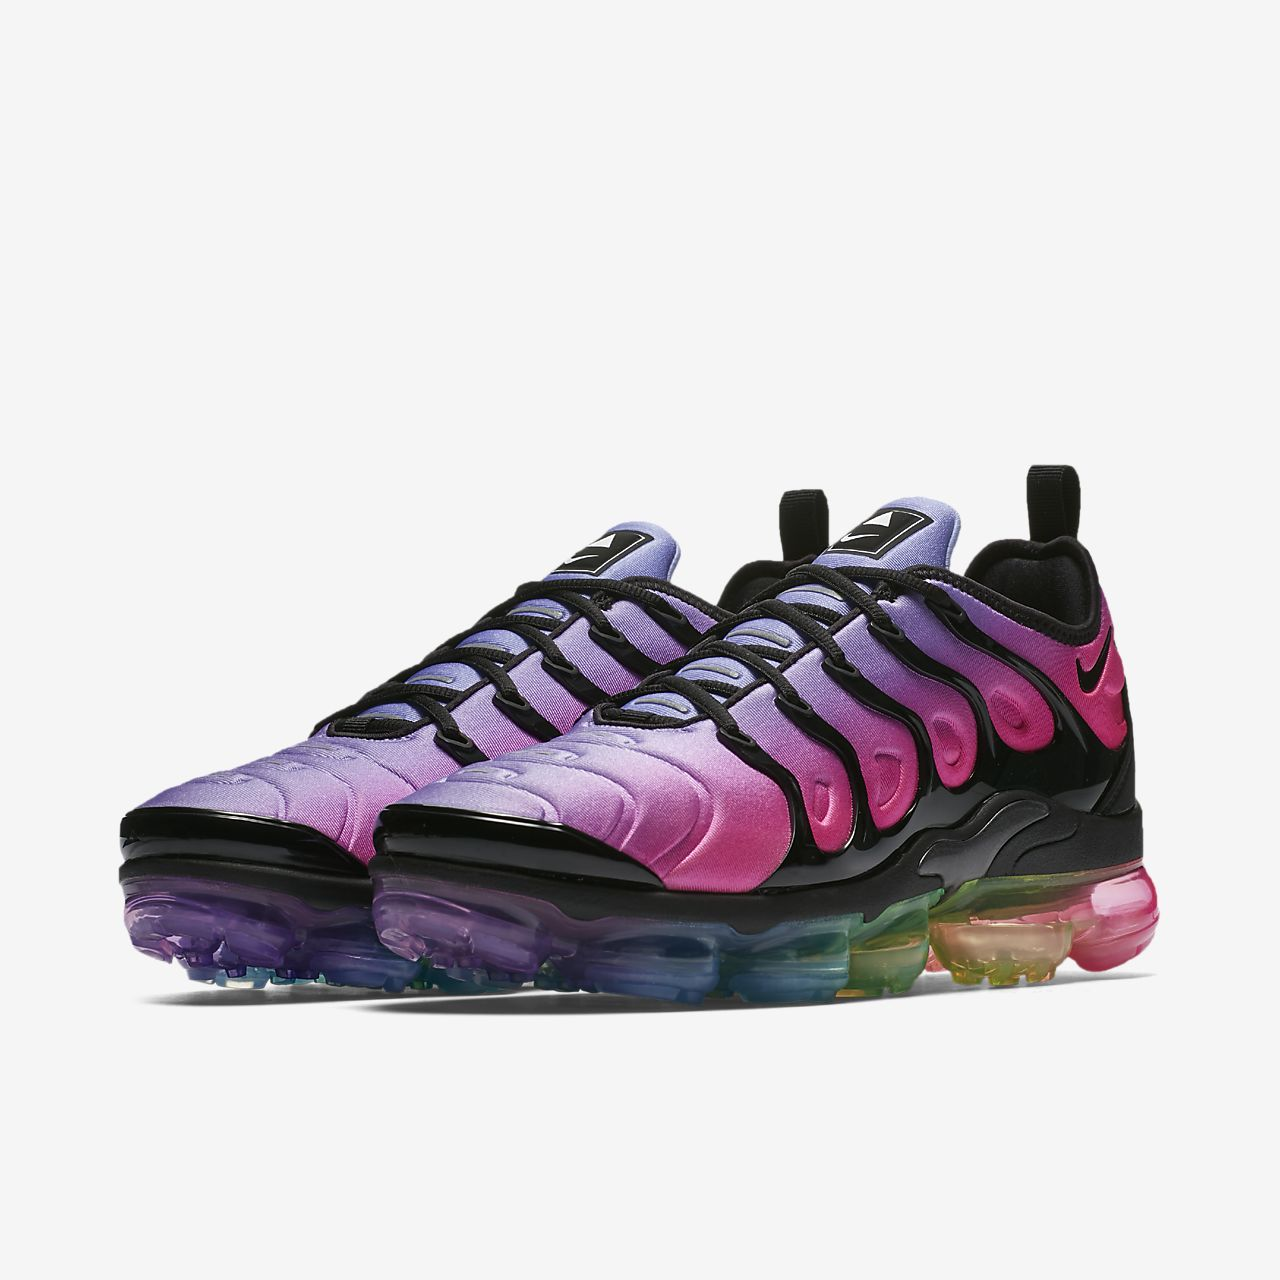 pretty nice c1d38 ae018 ... Nike Air VaporMax Plus BETRUE Men s Shoe